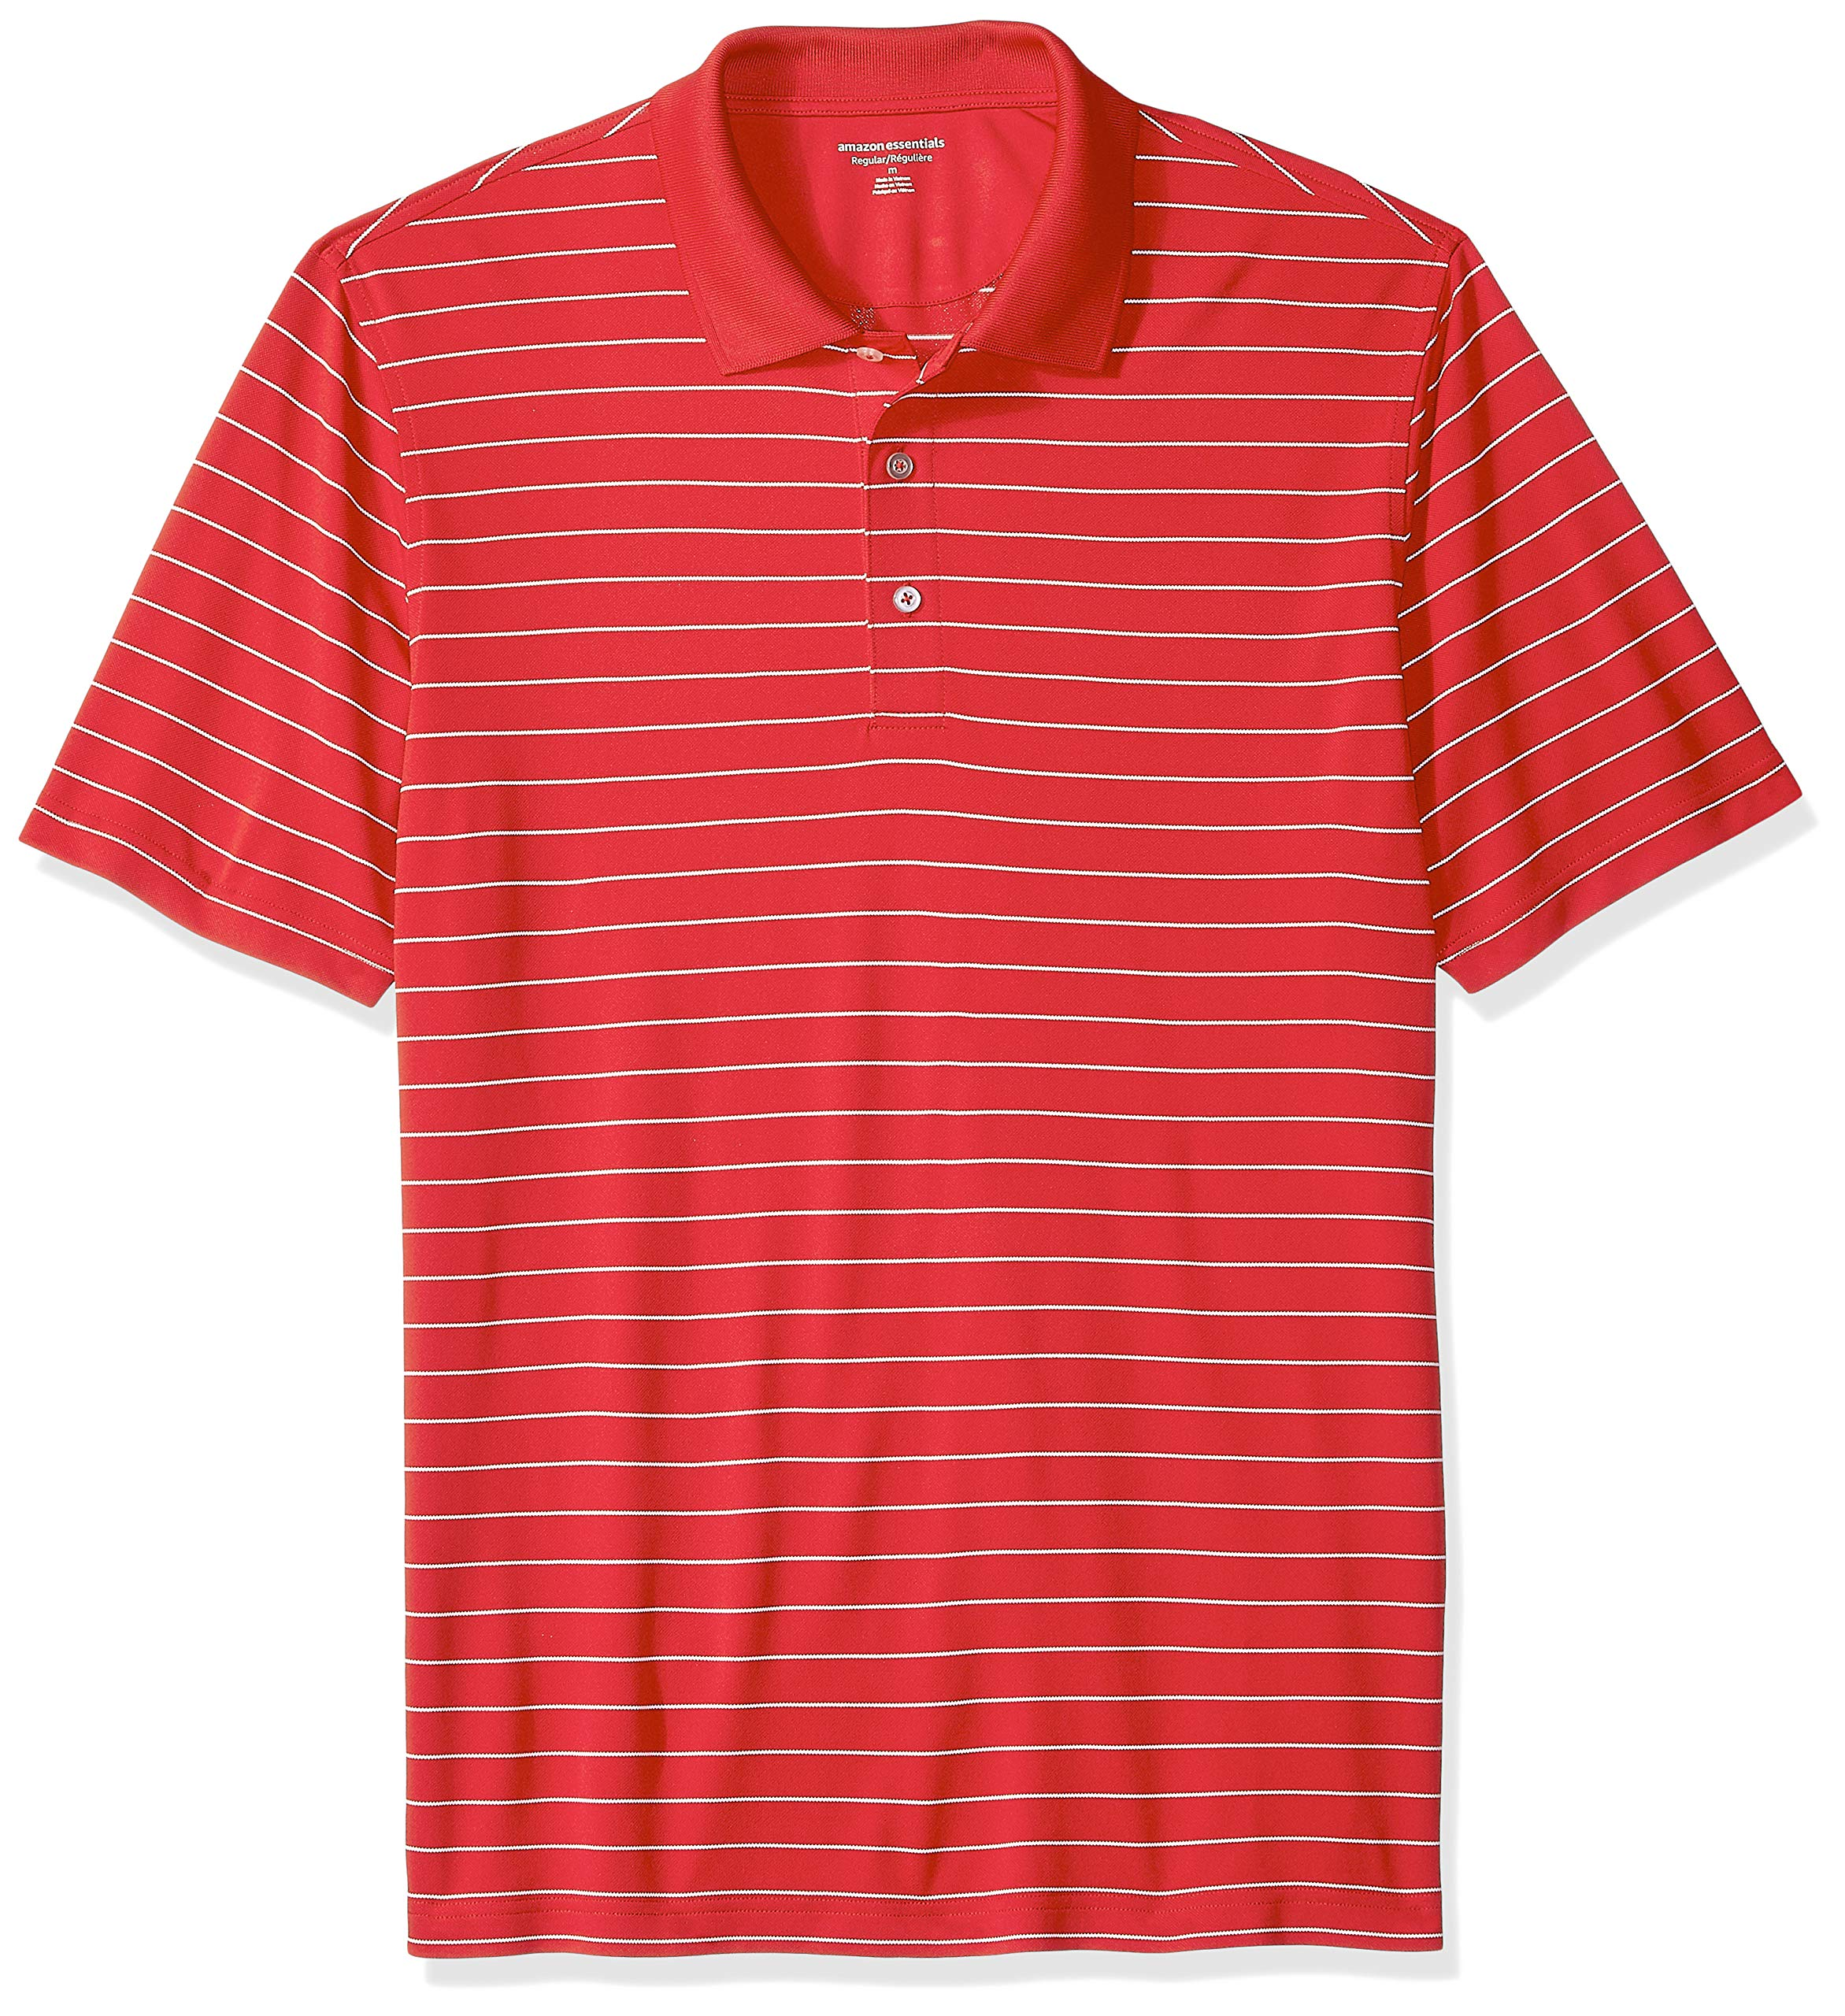 Amazon Essentials Men's Regular-Fit Quick-Dry Golf Polo Shirt, Red Stripe, Small by Amazon Essentials